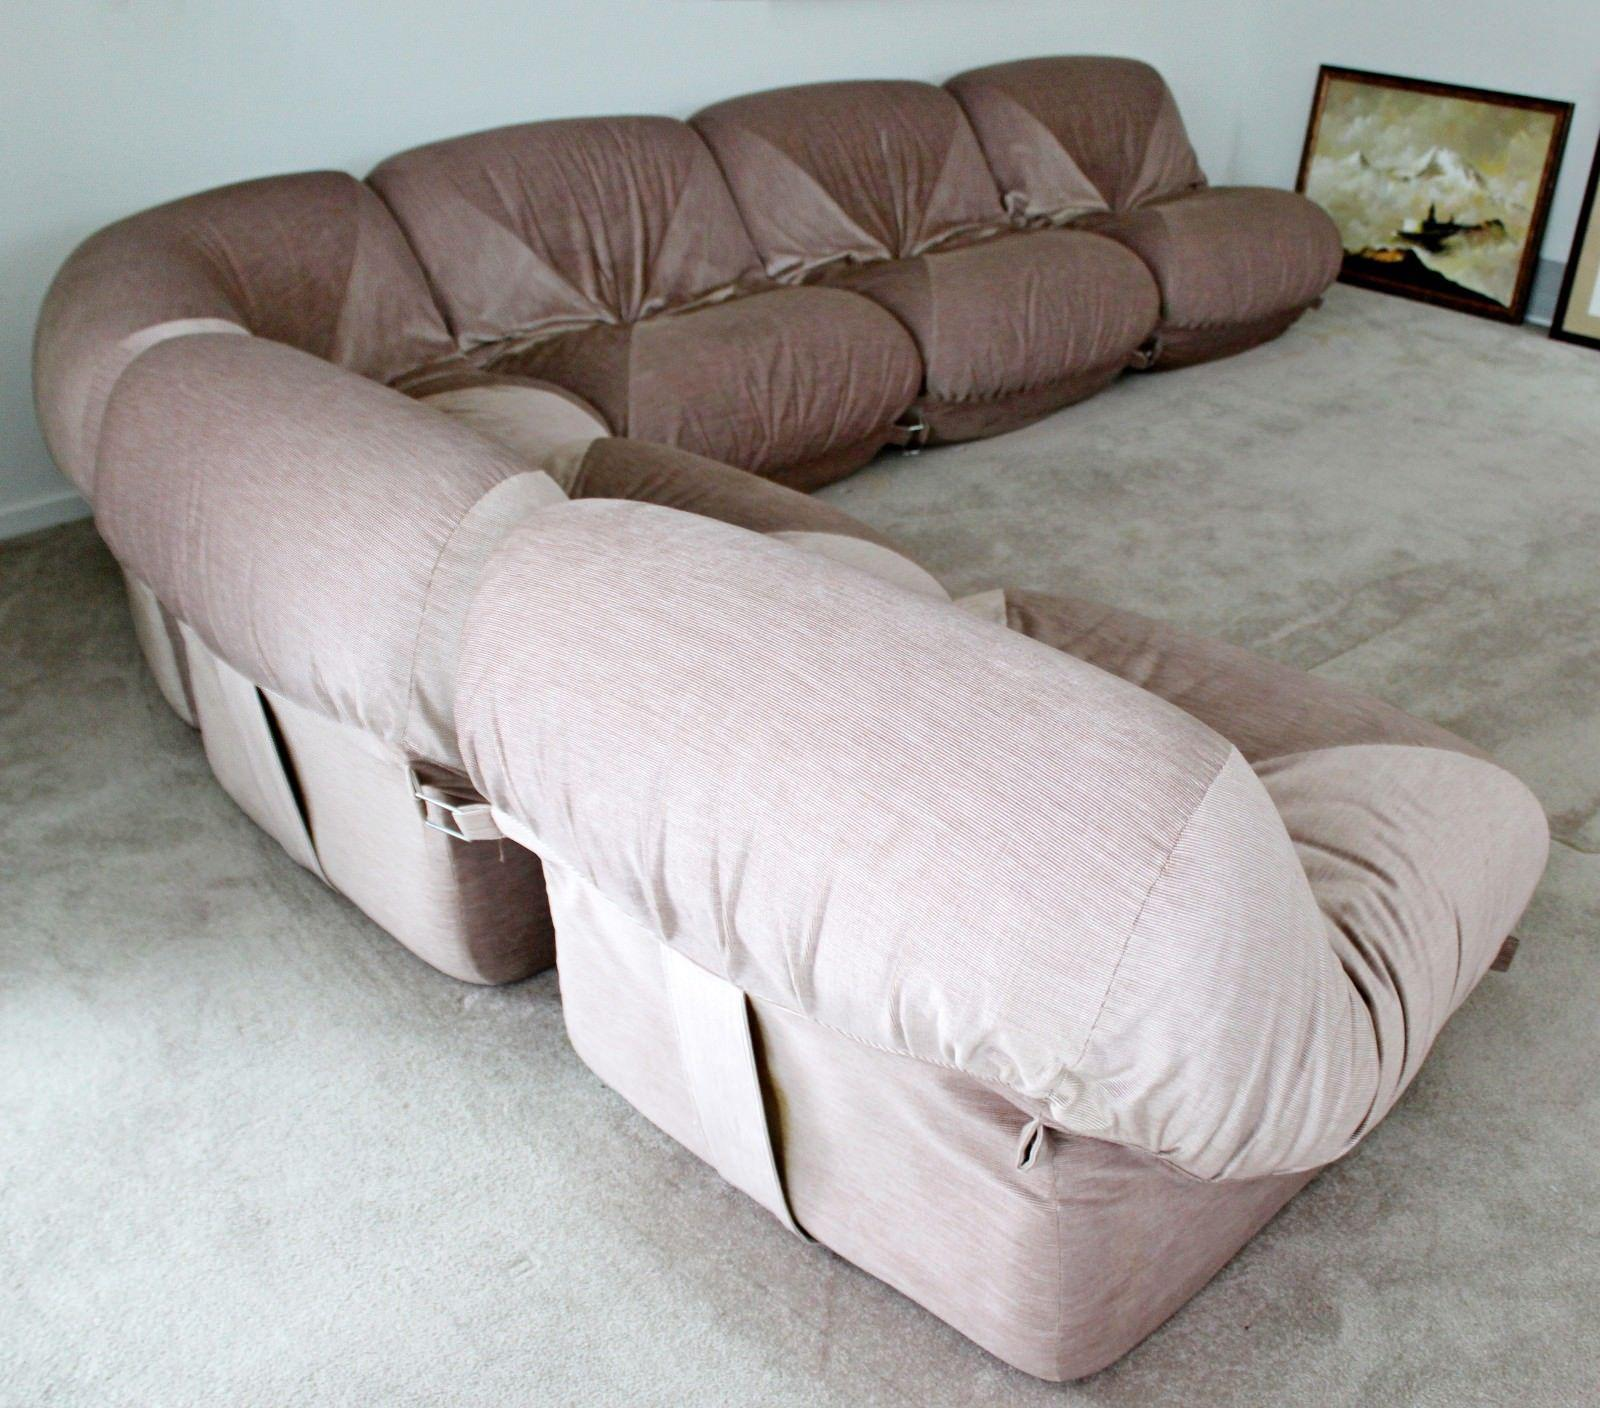 Airborne Mid Century Modern Airborne Patate 6 Piece Sectional Sofa 70s  Velvet French For Sale